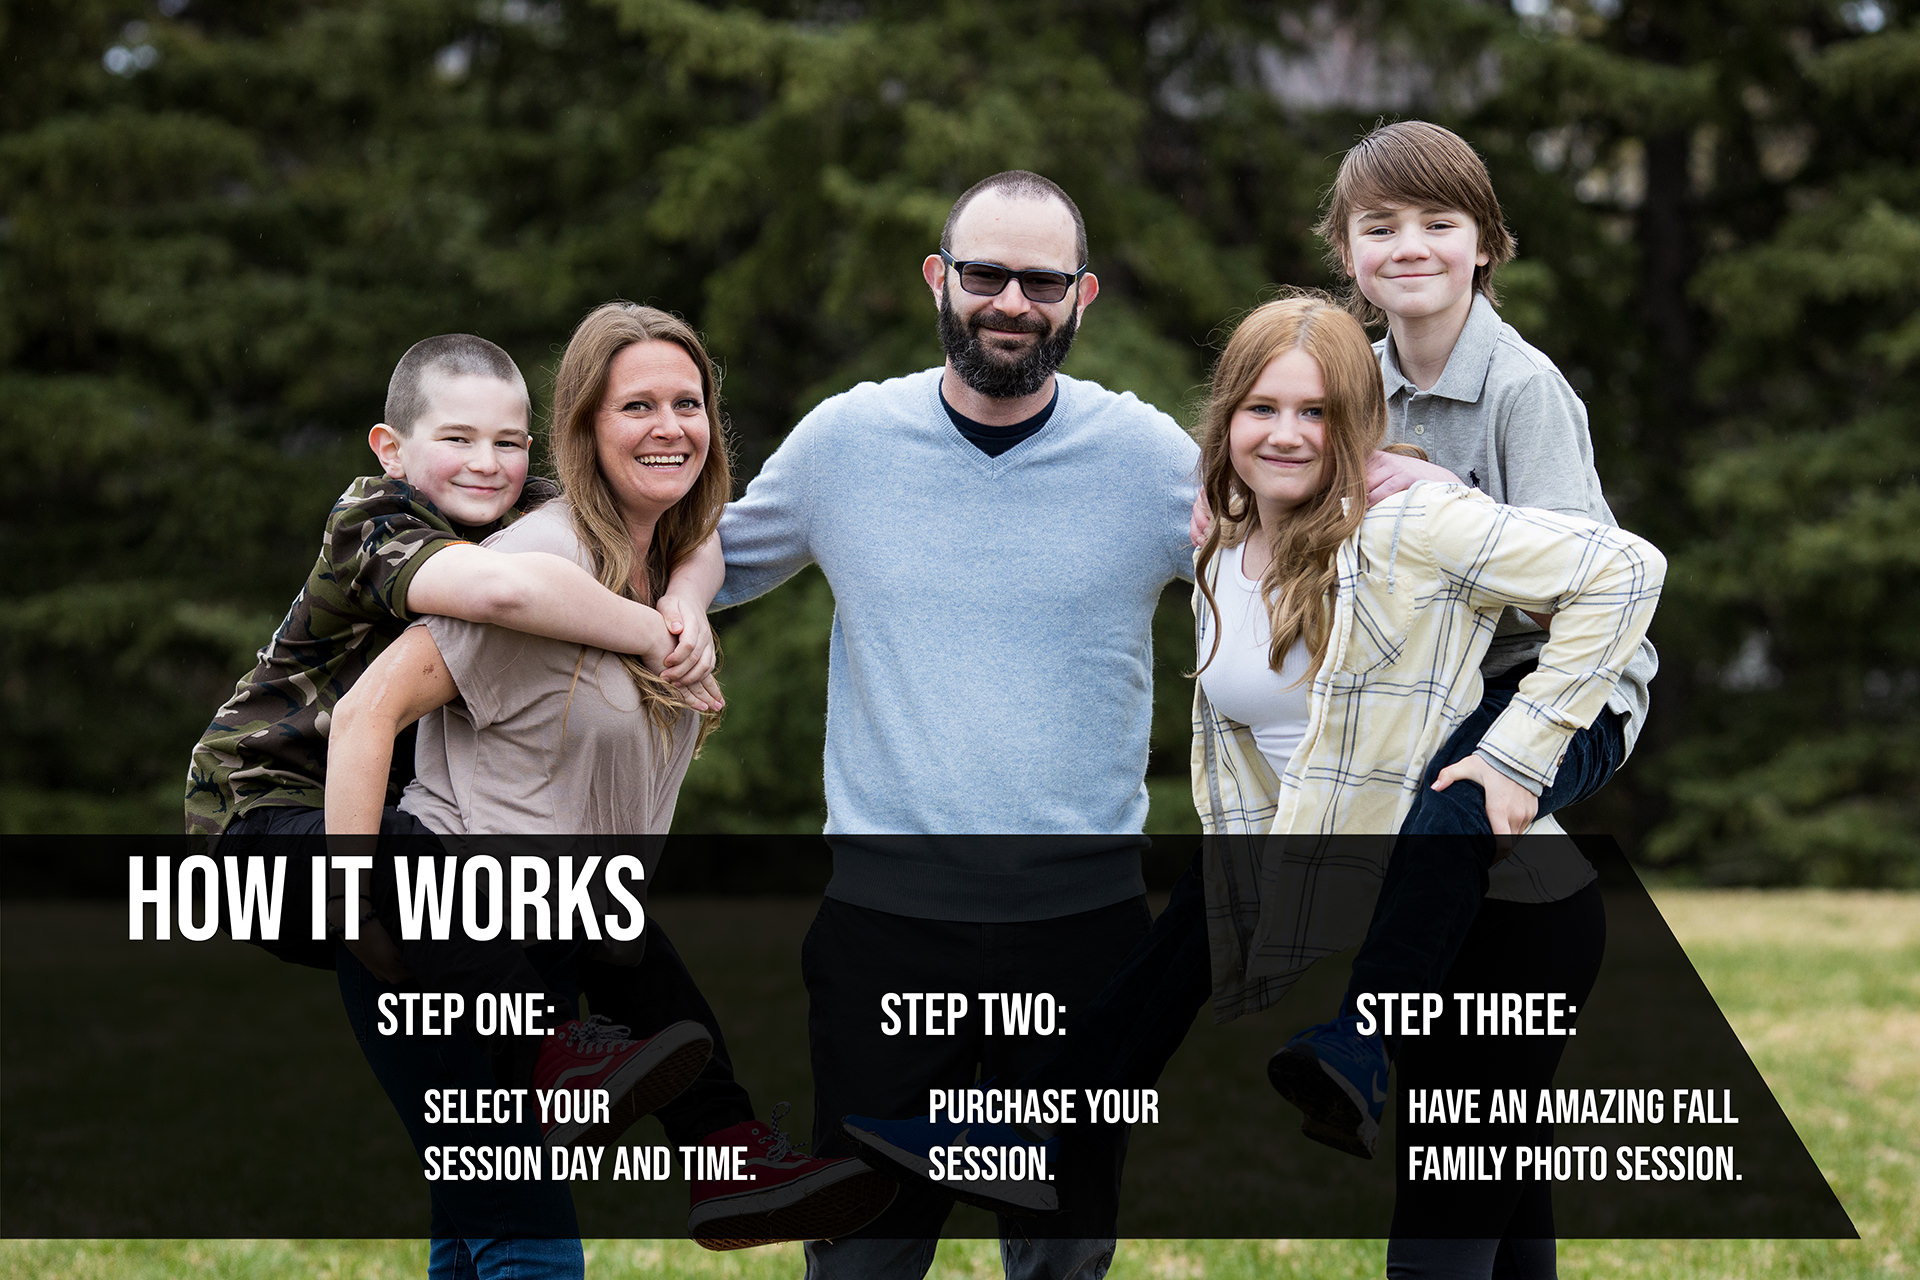 How to book fall family photos